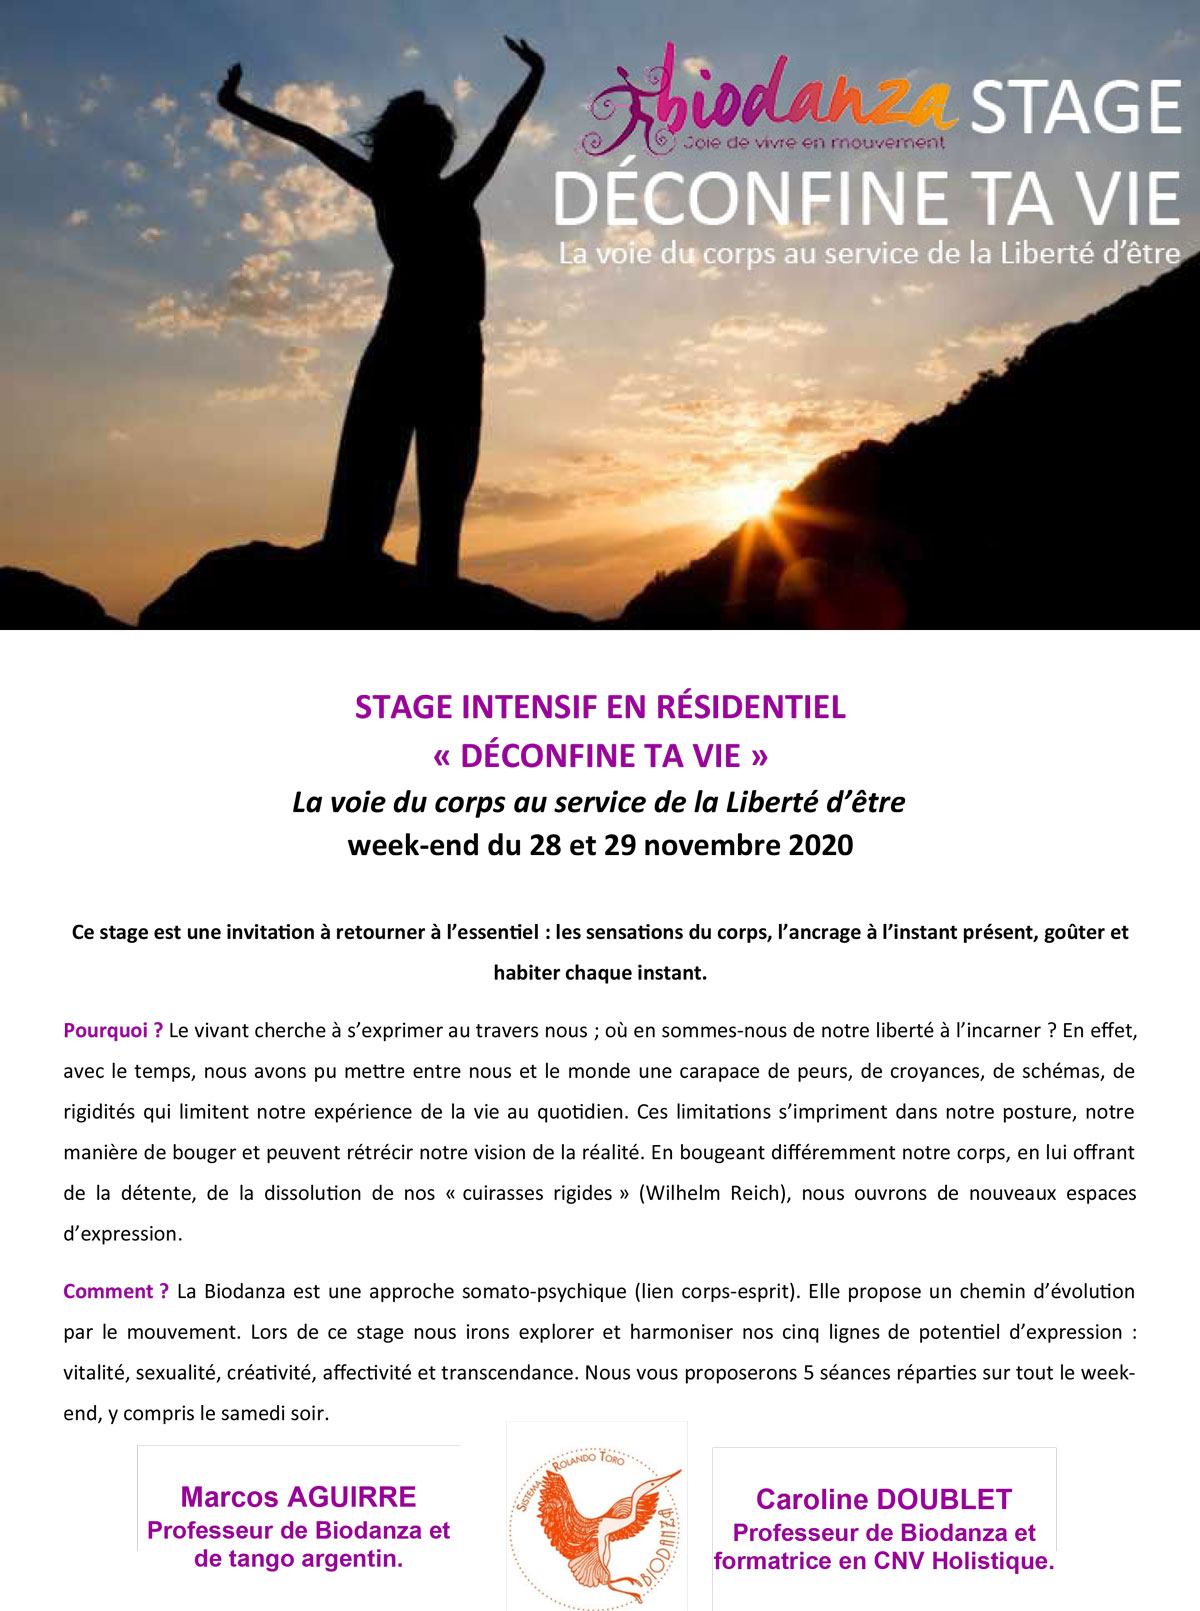 descriptif_stage_deconfines_ta_vie-Correction-Final-P1.jpg